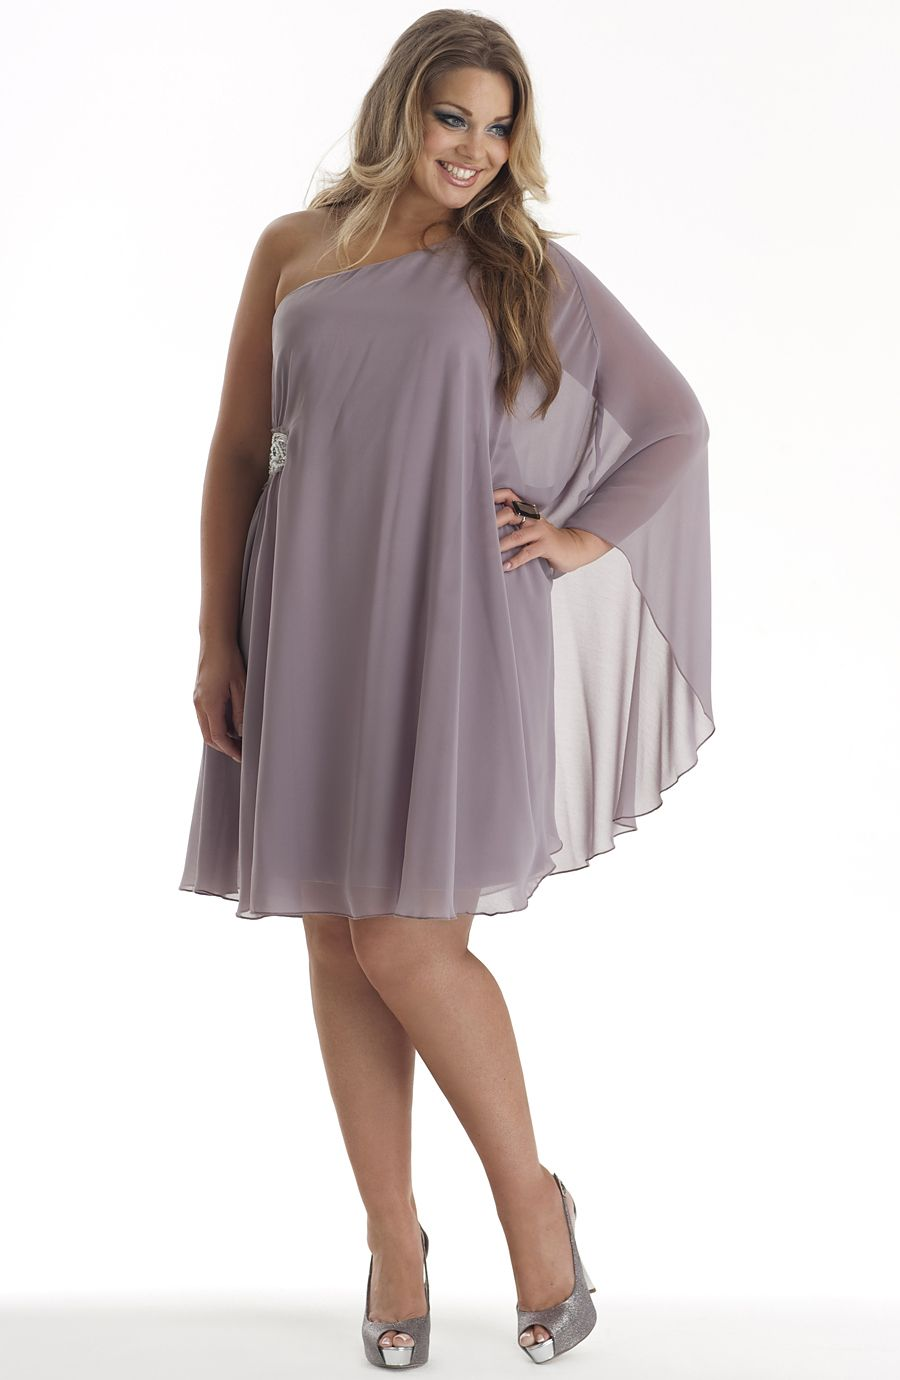 Dresses - Evening Dresses - Plus Size & Larger Sizes Womens ...